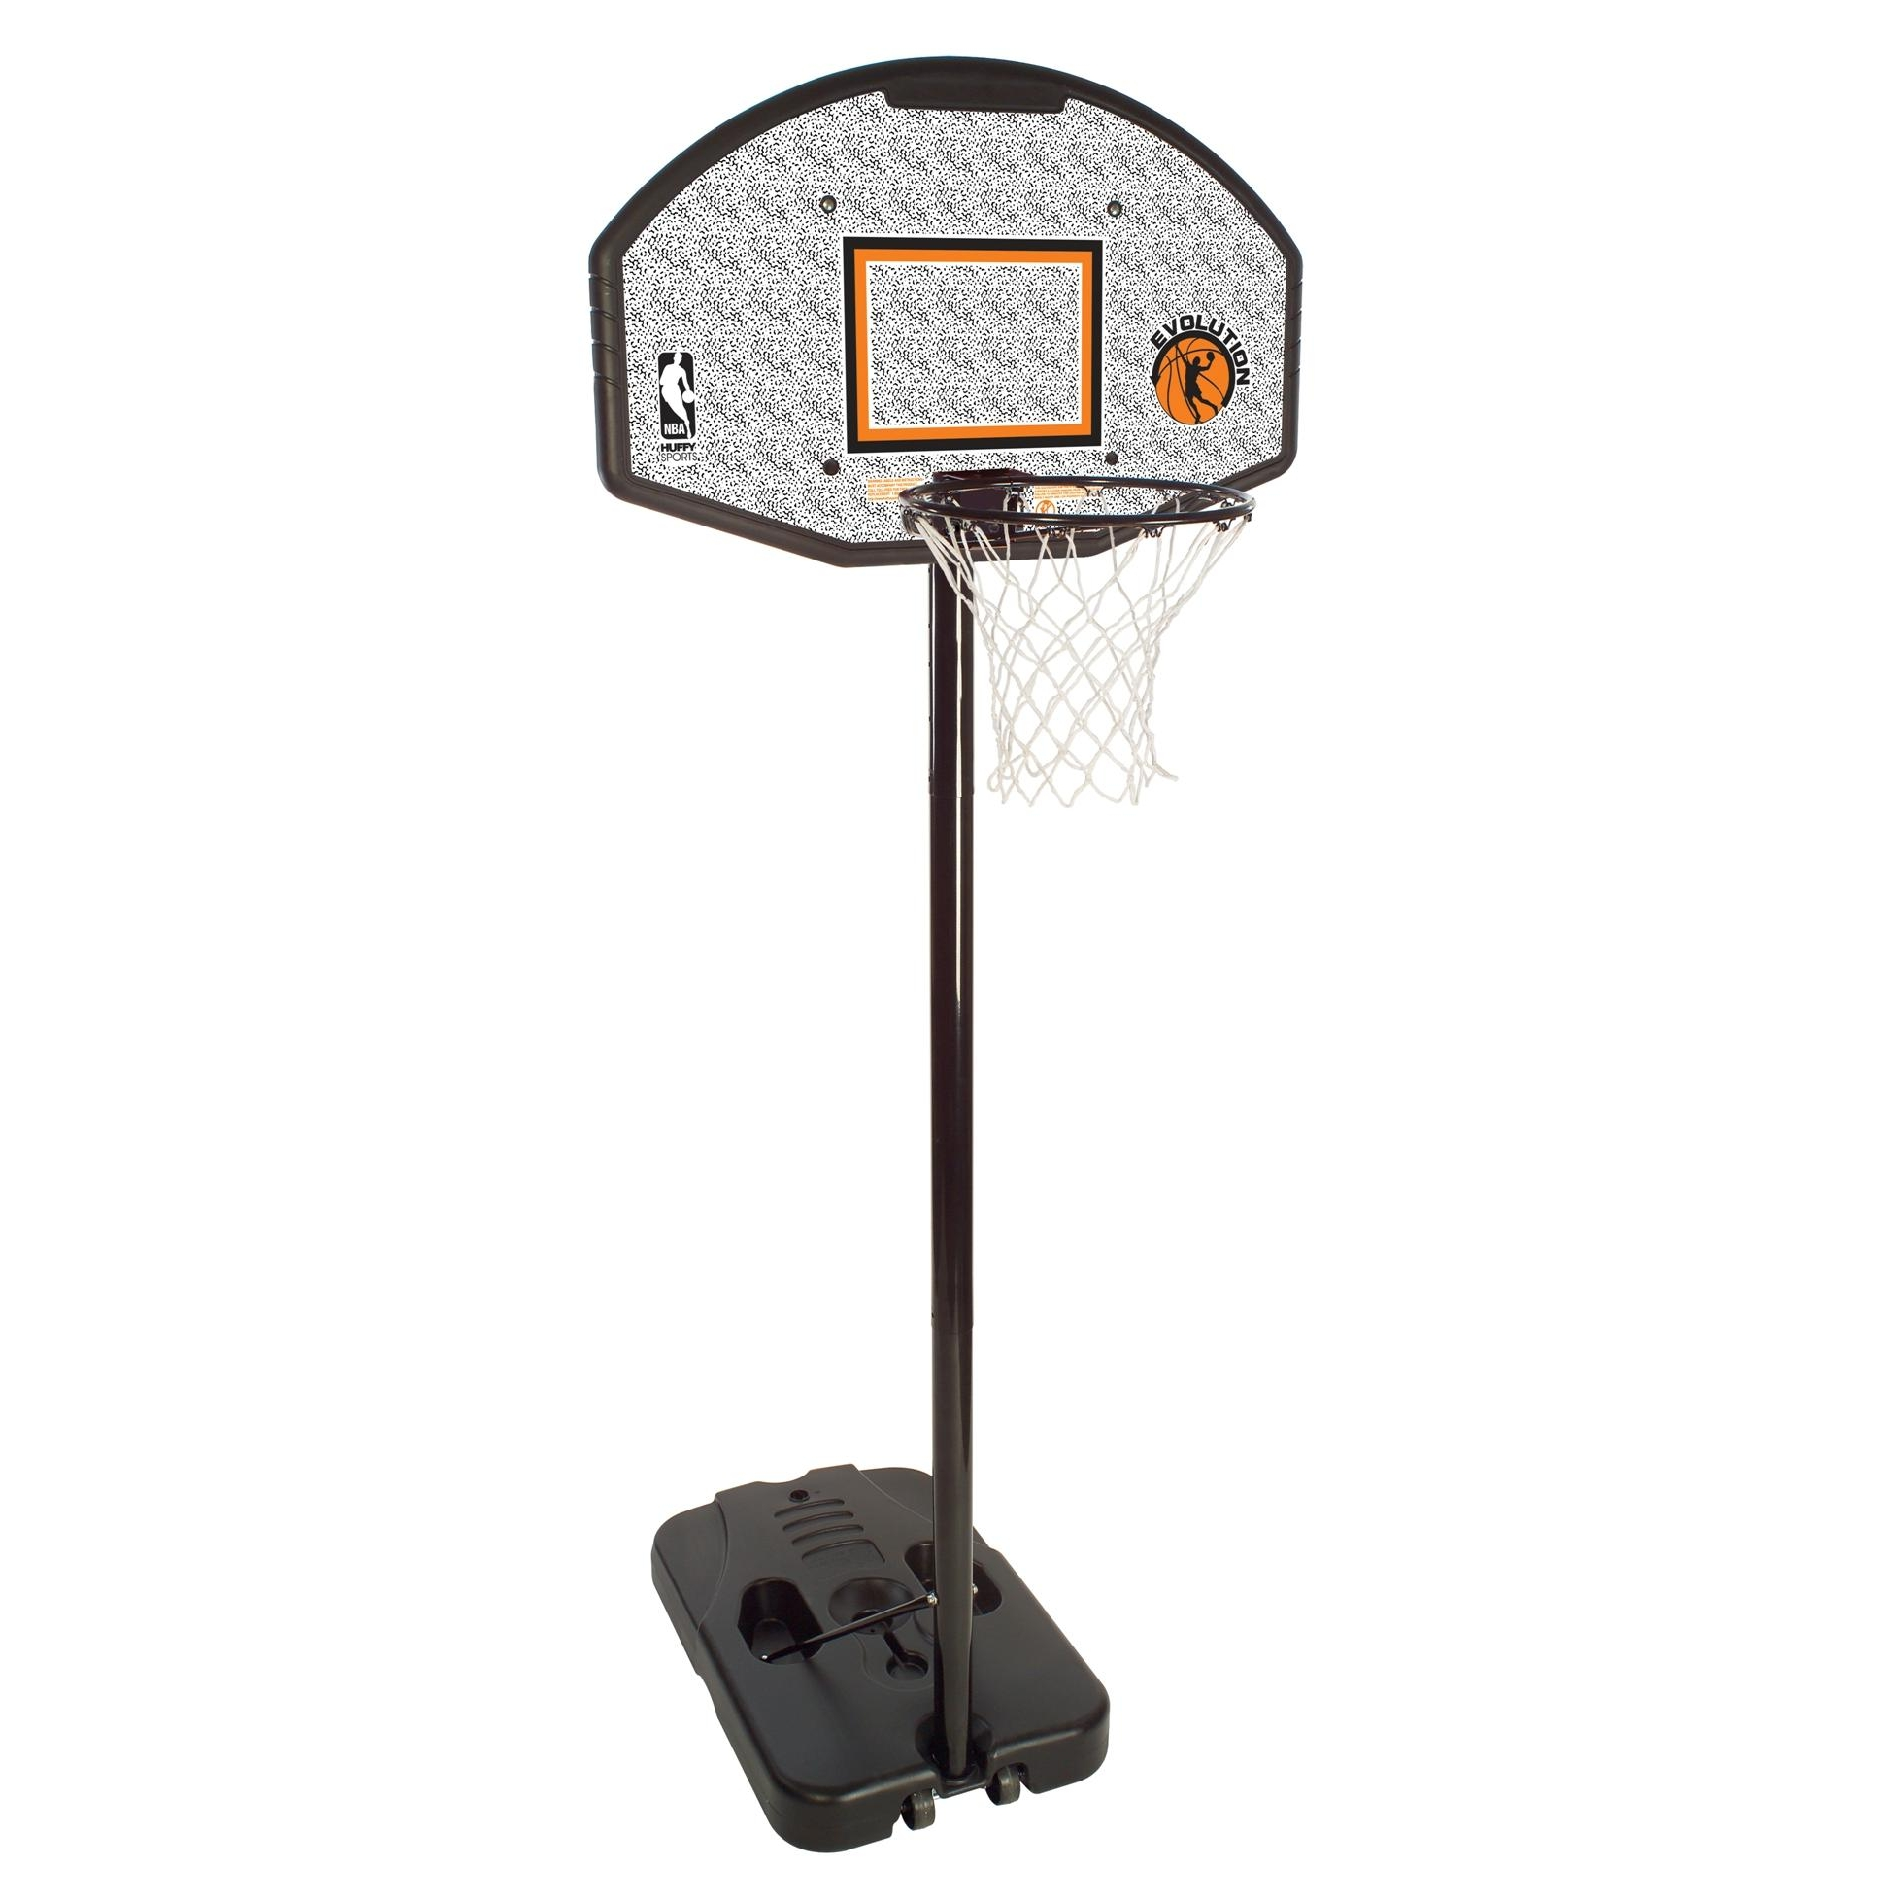 Basketball Ring Target Huffy Nba Eco Composite 44 Inch Portable Basketball System